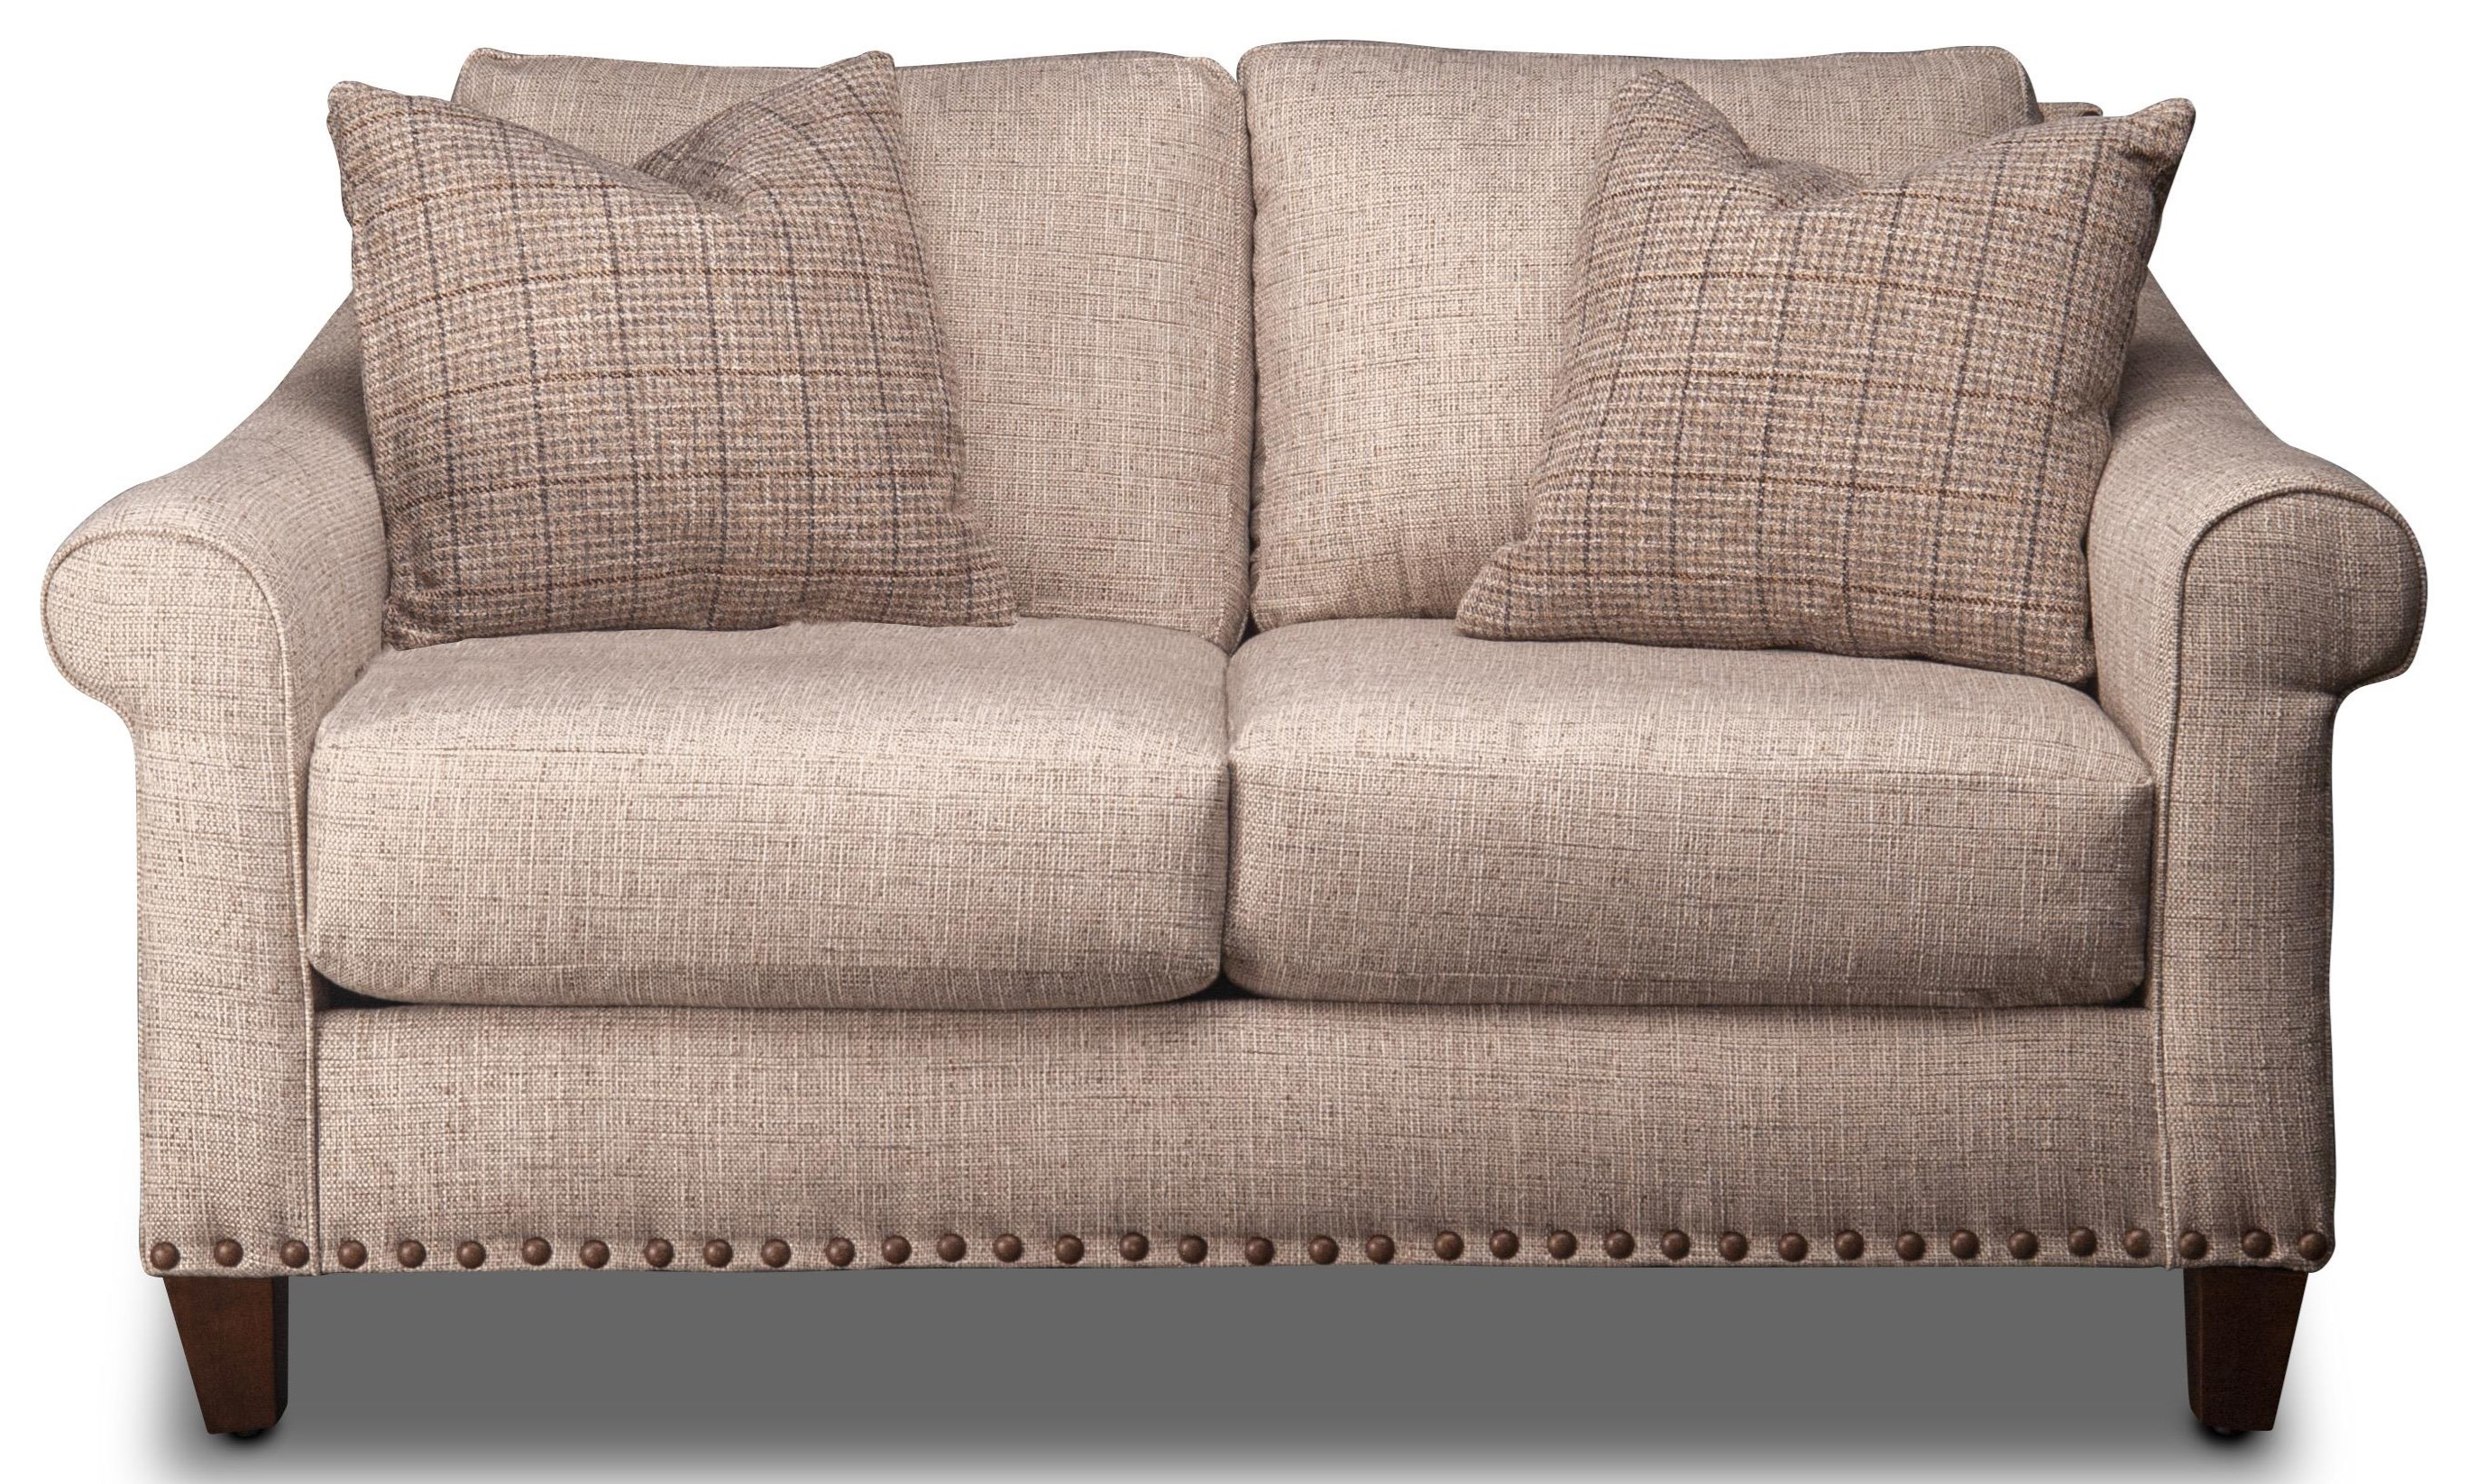 Lainey Lainey Loveseat by Klaussner at Morris Home